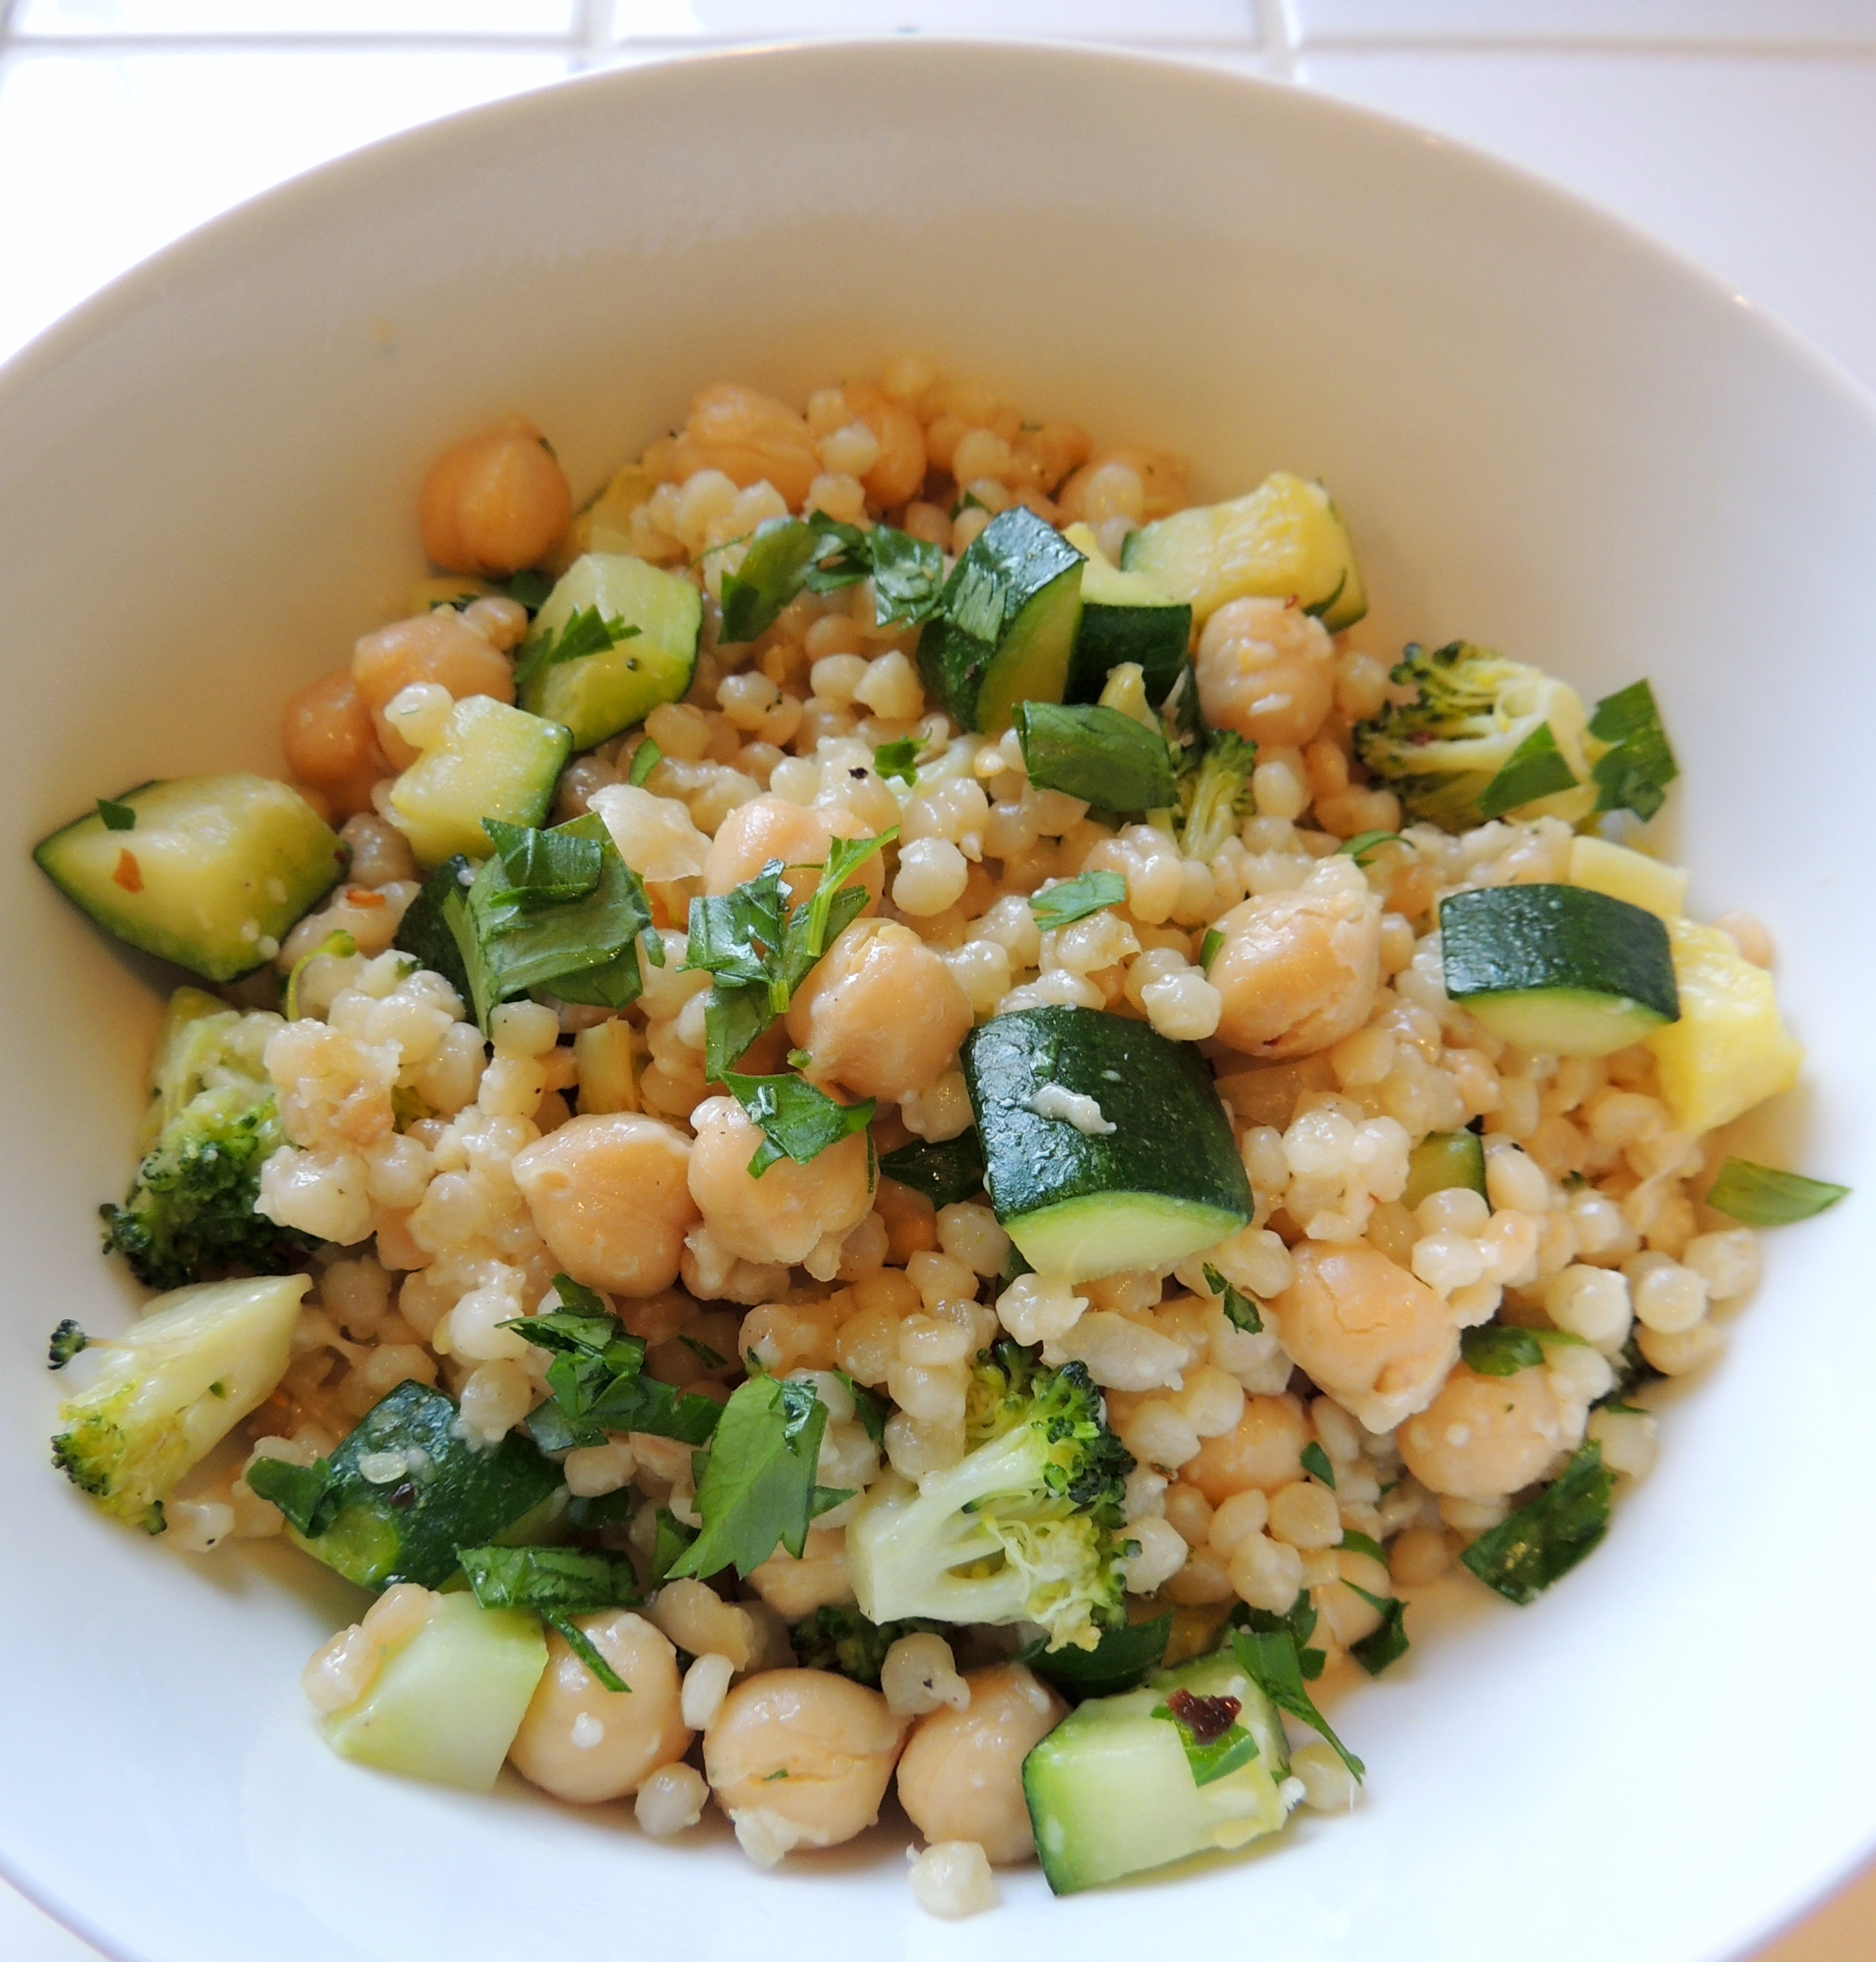 Toasted Israeli Couscous with Zucchini, Broccoli, Garbanzo ...